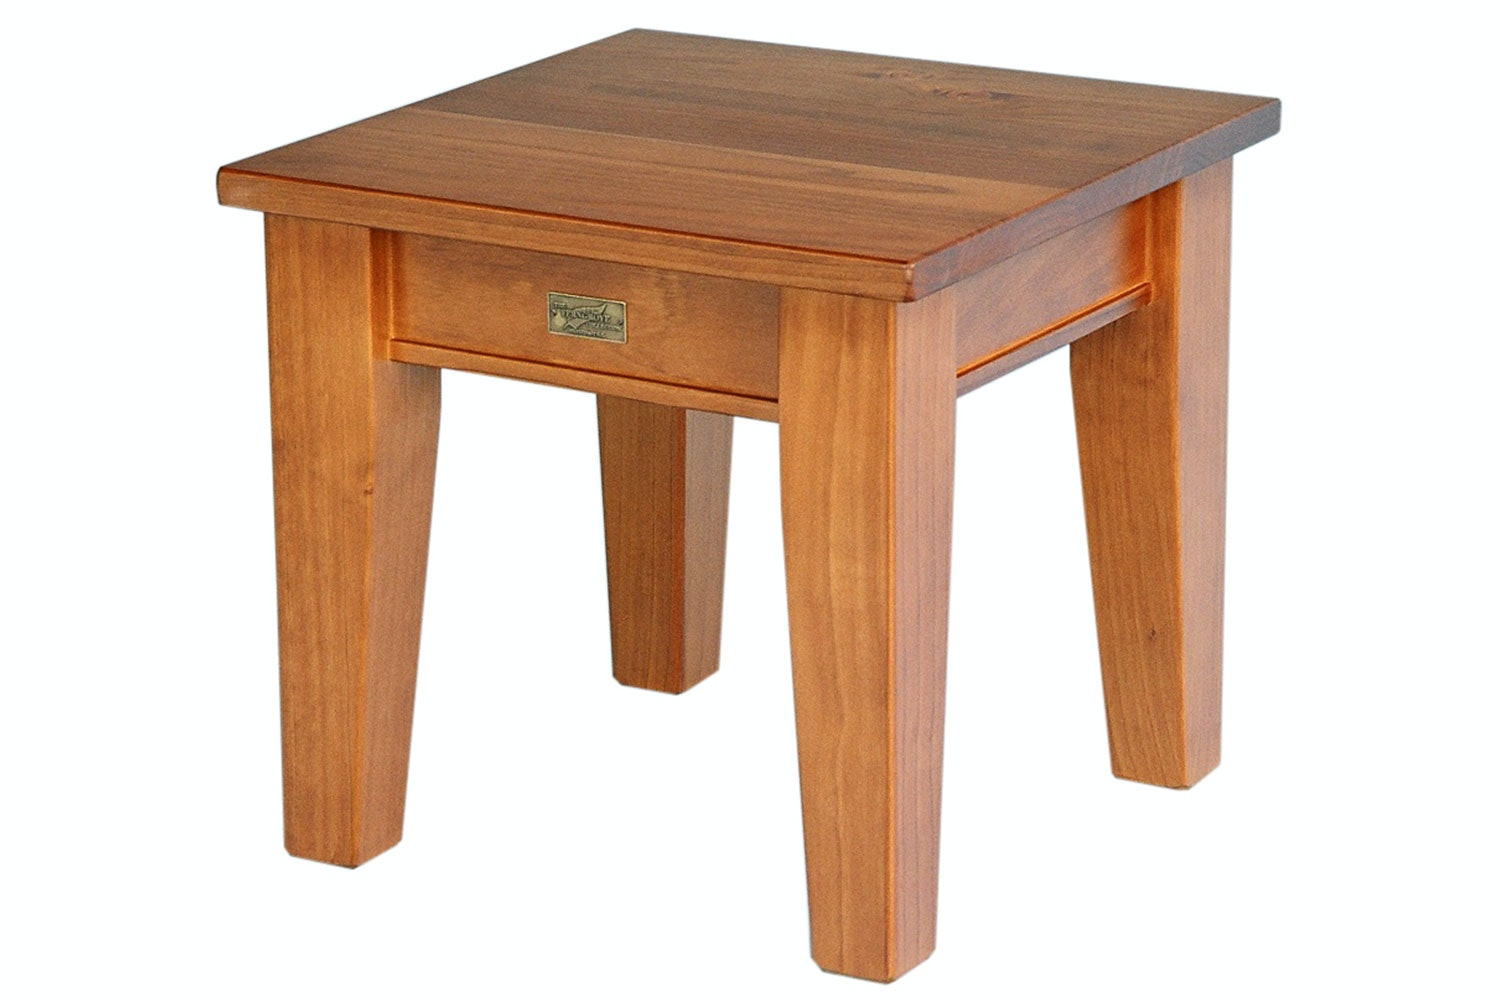 Ferngrove Lamp Table by Coastwood Furniture